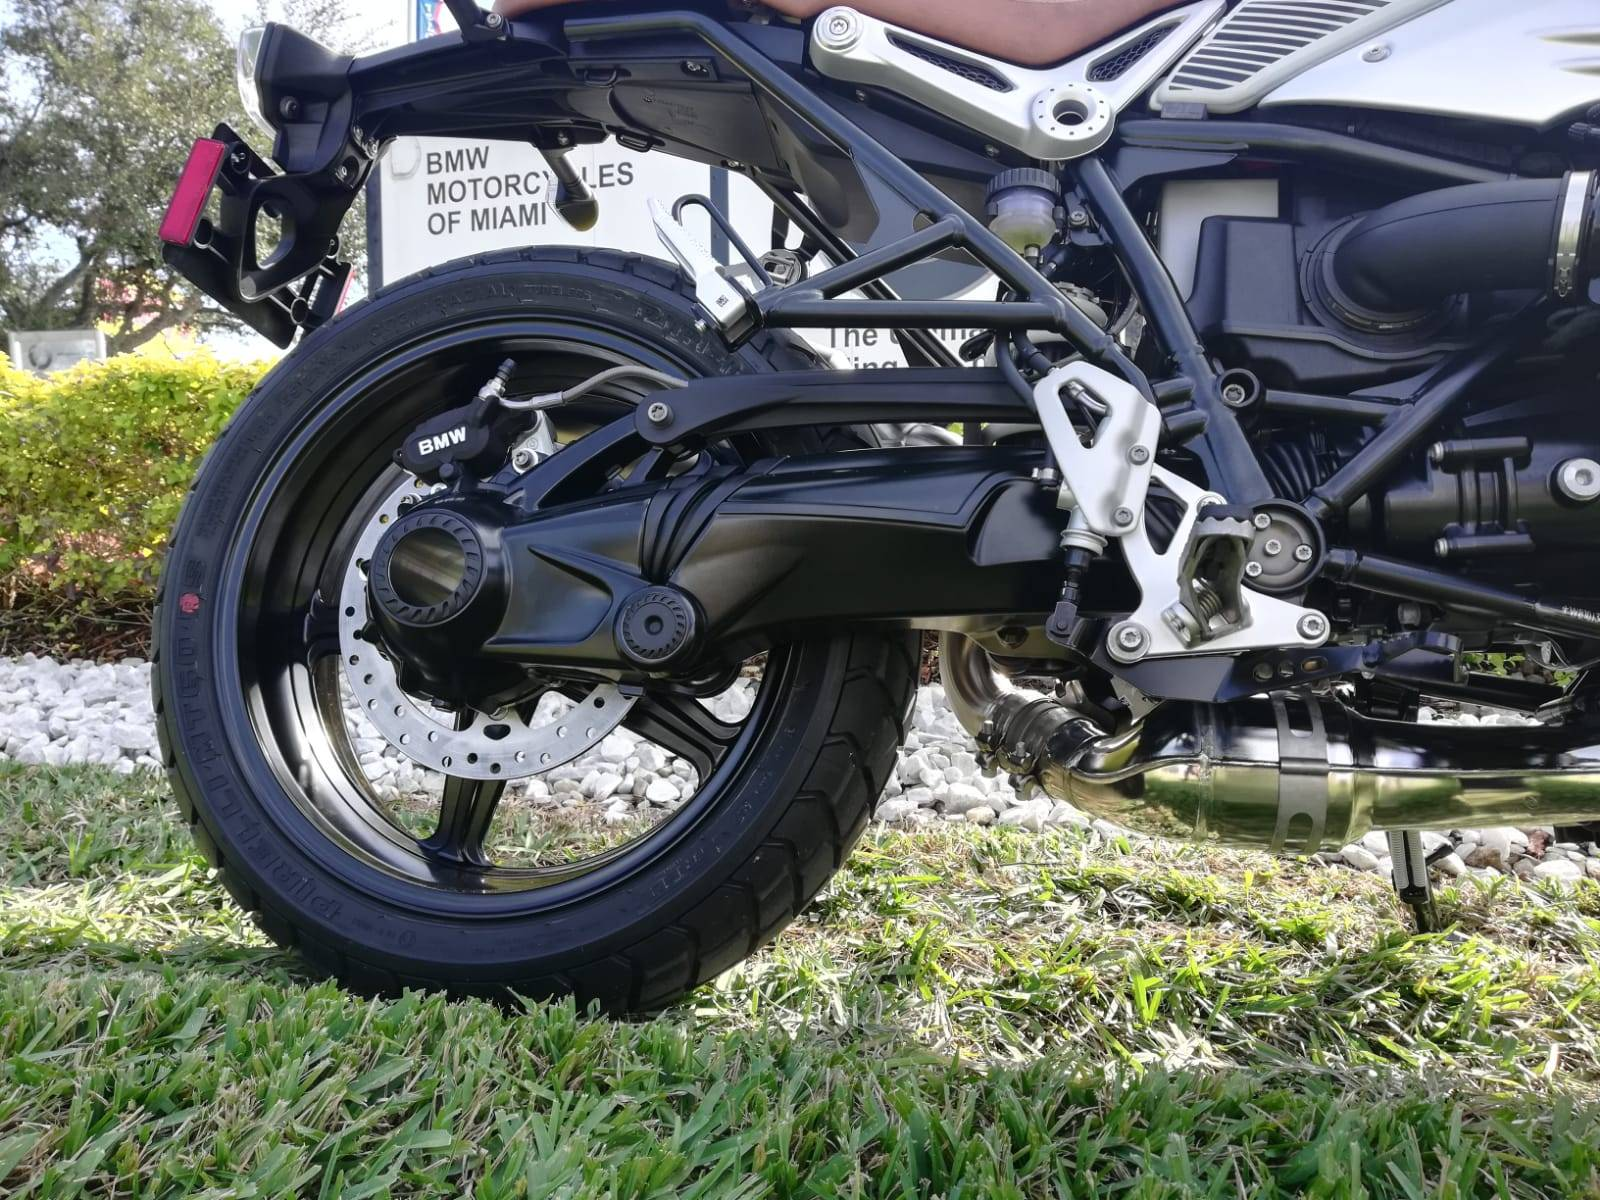 New 2019 BMW R nine T Scrambler for sale, BMW Scrambler for sale, BMW Motorcycle Scrambler, Scrambler, BMW Motorcycles of Miami, Motorcycles of Miami, Motorcycles Miami, New Motorcycles, Used Motorcycles, pre-owned. #BMWMotorcyclesOfMiami #MotorcyclesOfMiami. - Photo 21